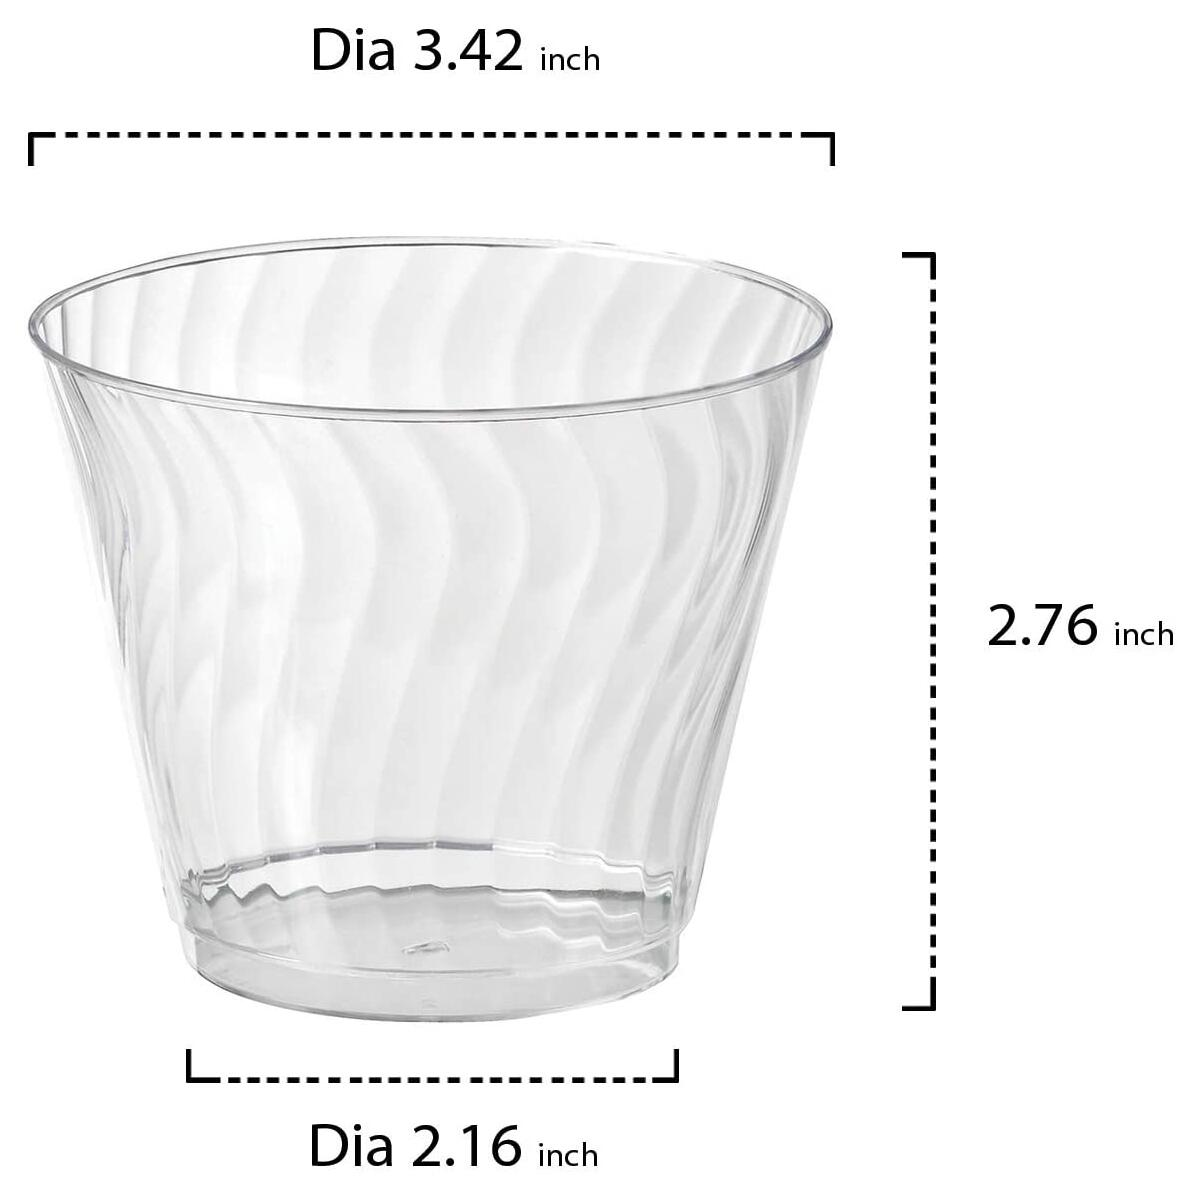 9 oz. Disposable Hard Plastic Crystal Wave/Swirl Tumblers, Clear, Pack of 50 (ONLY)